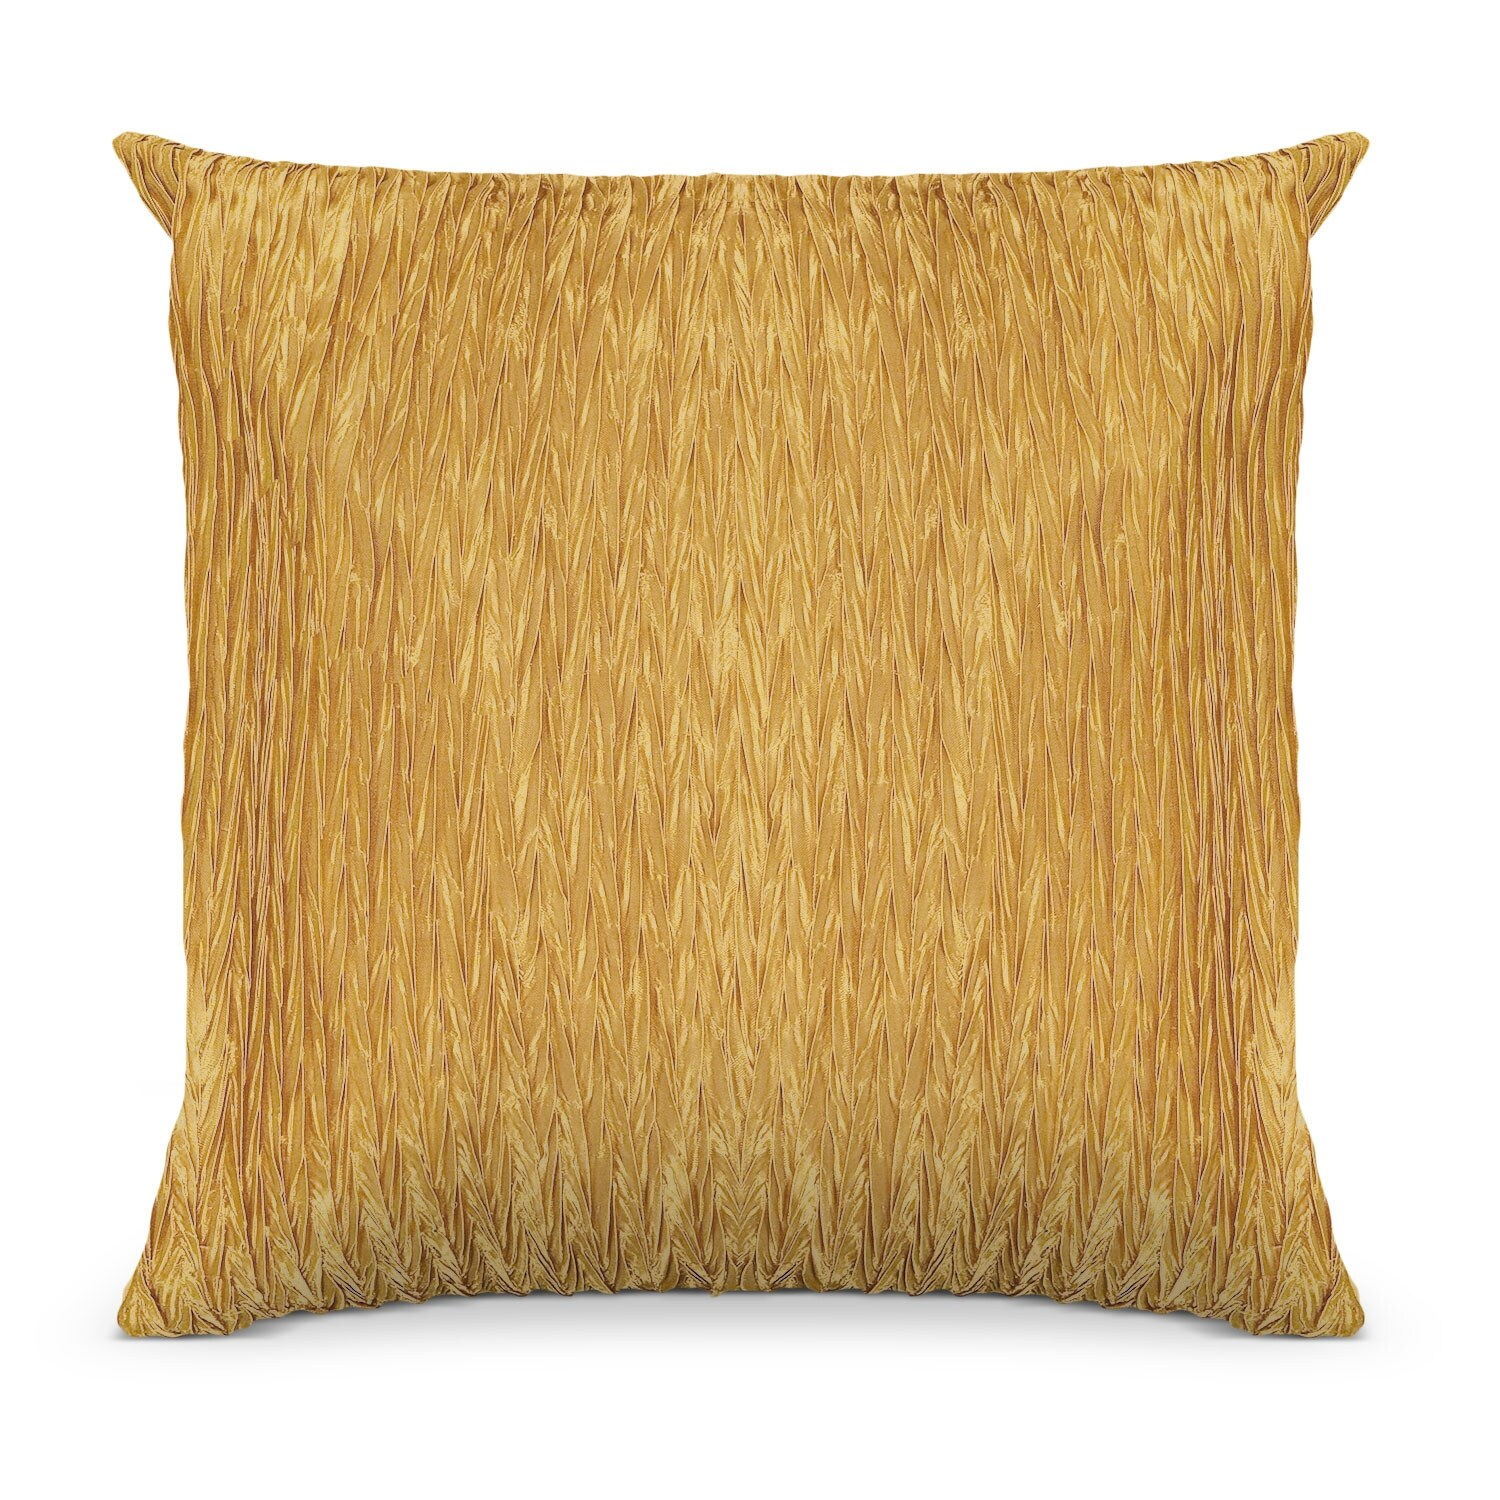 Tradewind Gold Decorative Pillow